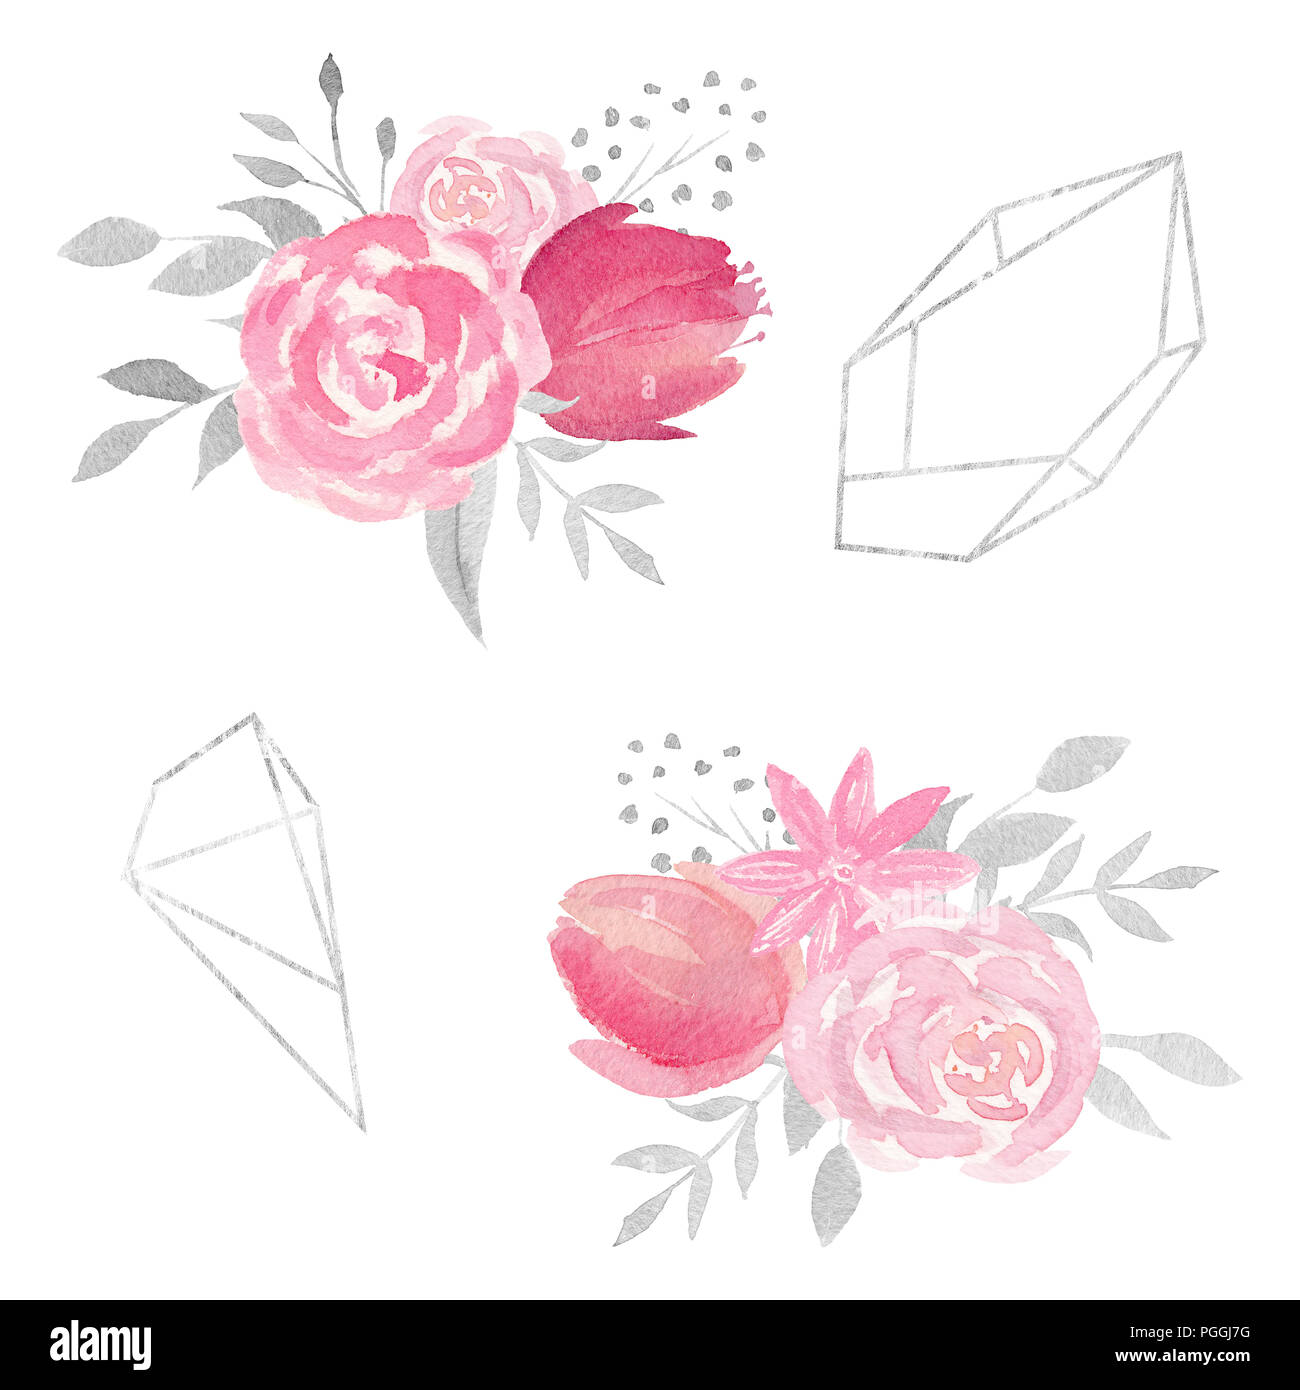 Set Of Watercolor Floral Composition With Roses Flowers Leaves